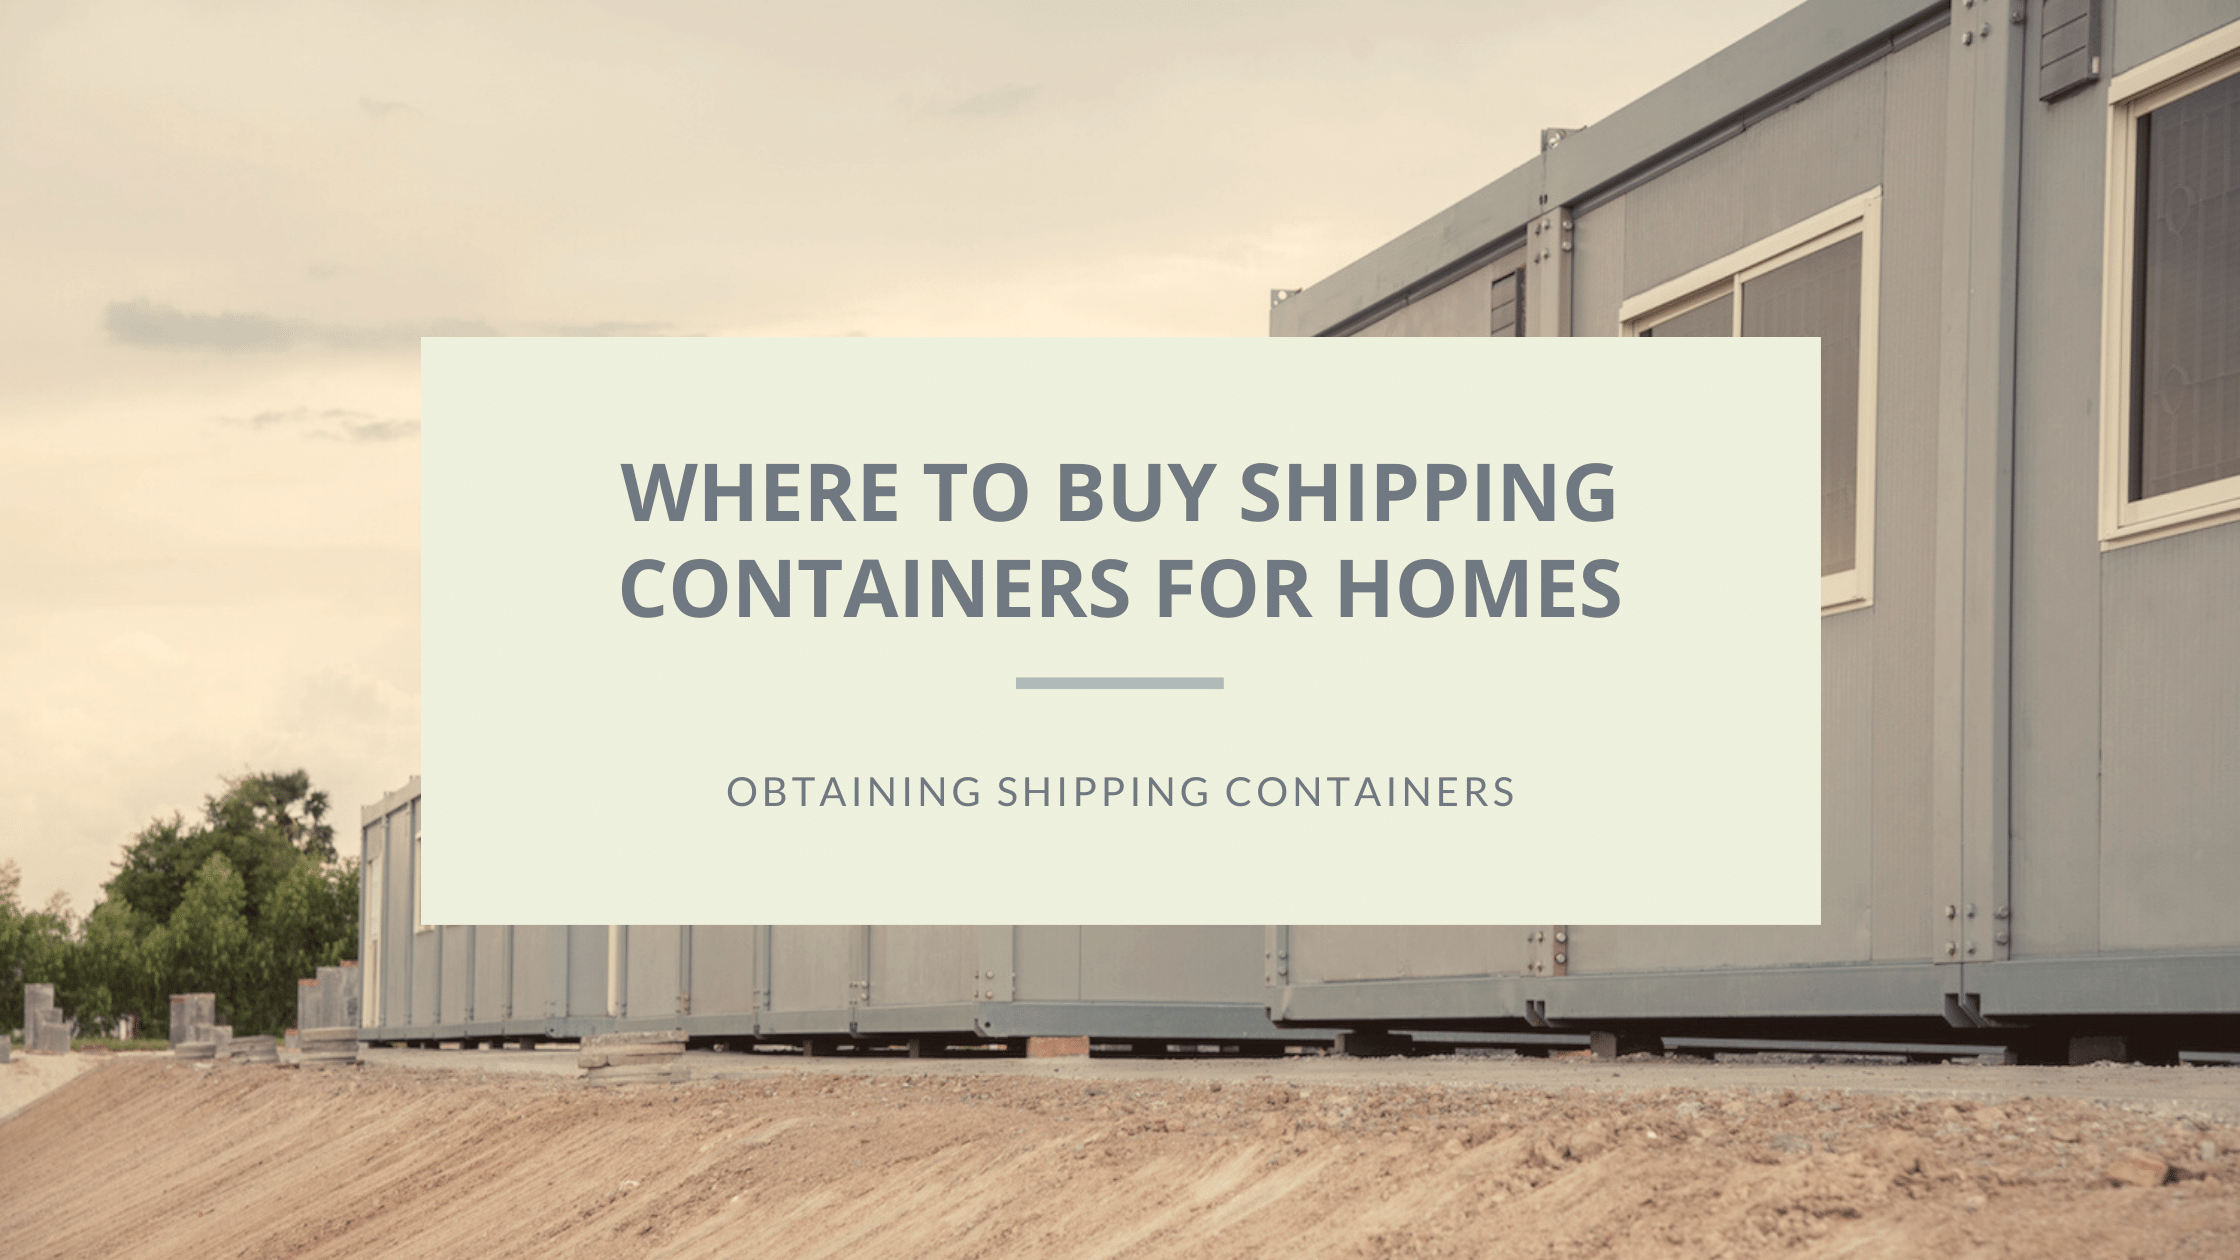 where to buy shipping containers featured